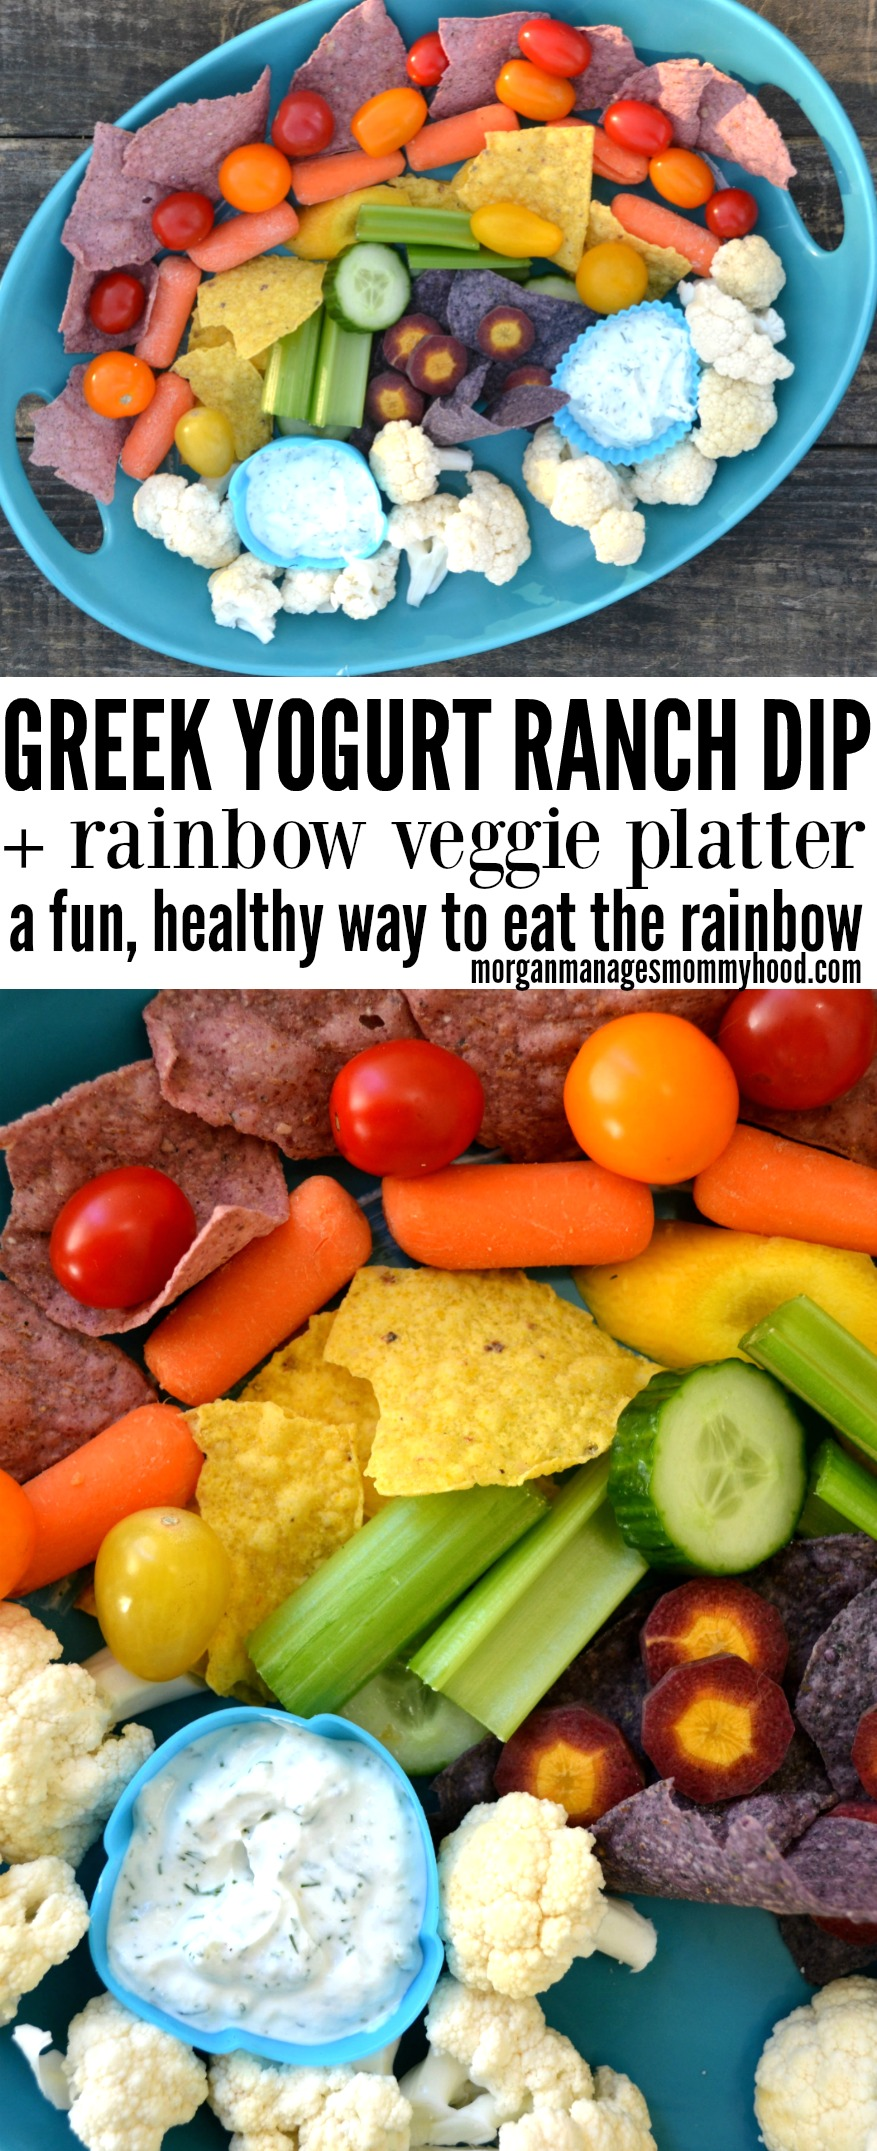 This Greek yogurt ranch dip recipe is not only delicious and kid friendly, but a healthy veggie dip you can feel good about. Layer this ranch dip with Jackson's Honest chips and veggies of all colors to make a fun and interesting rainbow veggie platter. (ad) #healthysnacks #healthykidfood #funkidfood